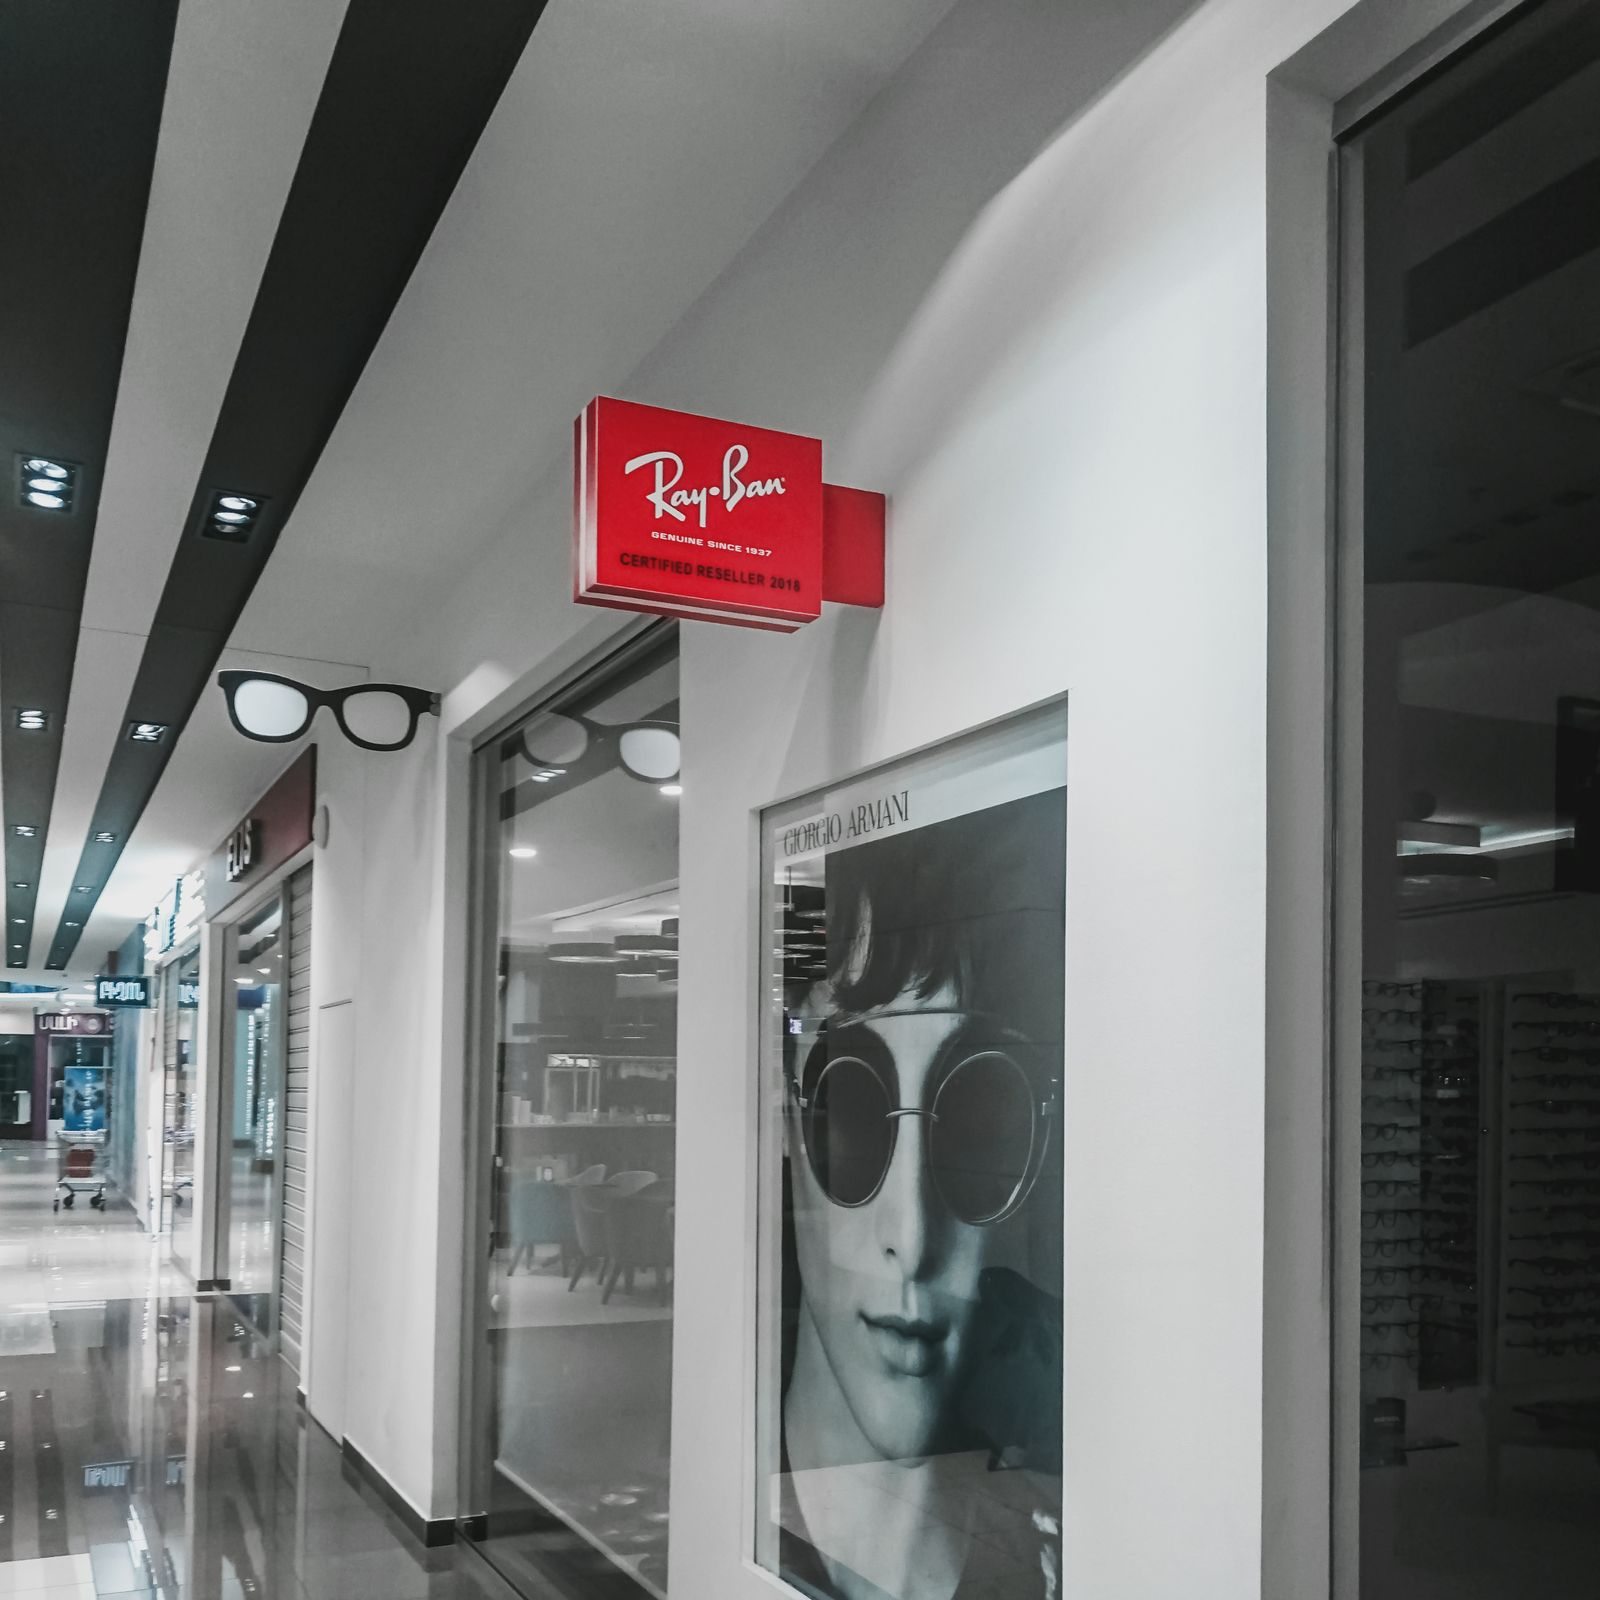 Ray Ban acrylic light box in red color and wall-blade style for store branding and promotion inside a shopping mall